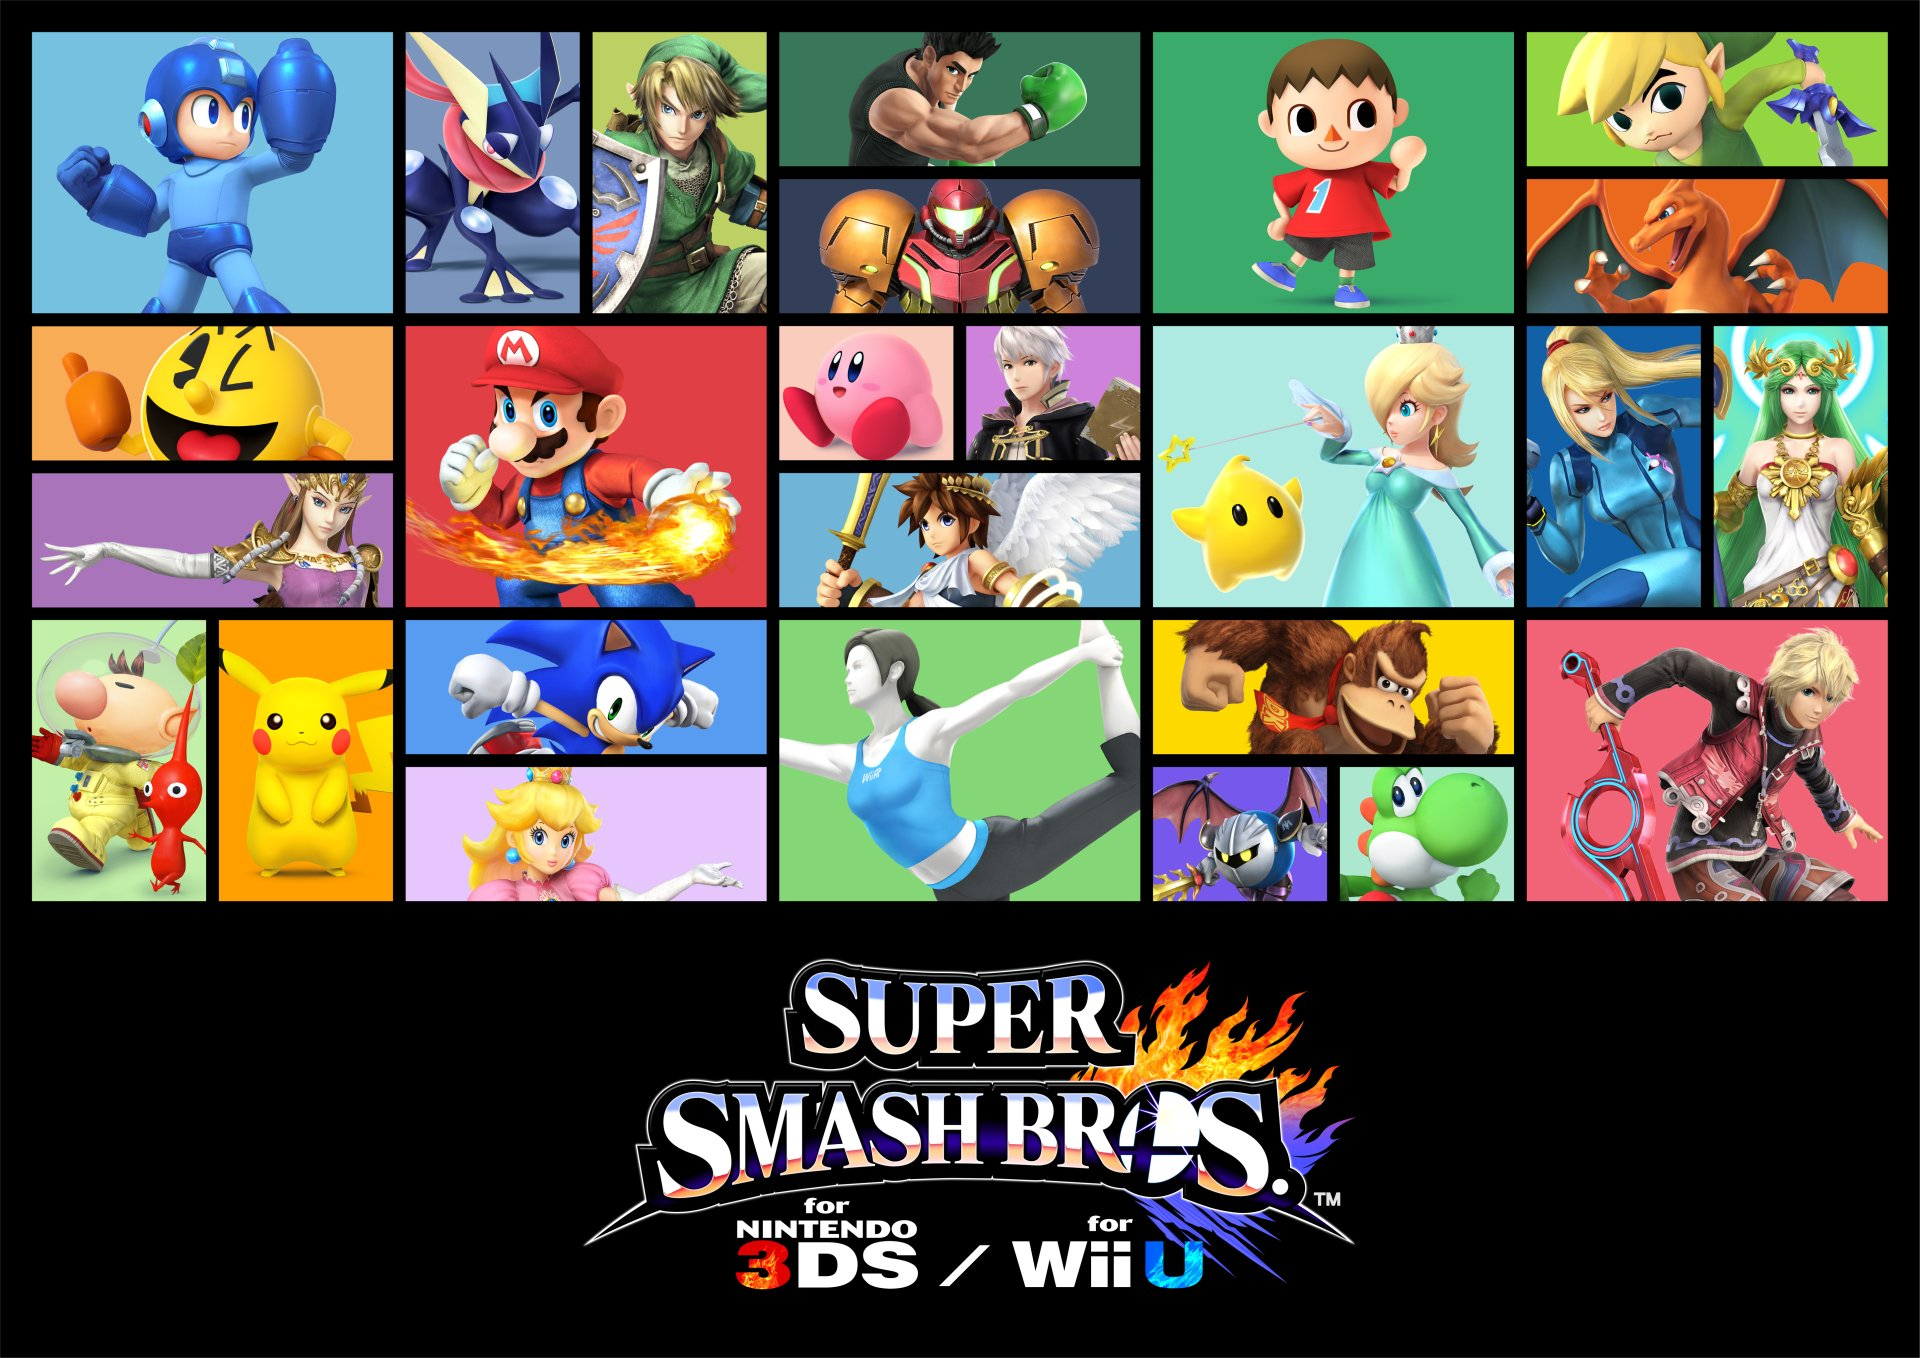 Video Game - Super Smash Bros. for Nintendo 3DS and Wii U  Mega Man Greninja (Pokémon) Link Little Mac (Punch-Out!!) Samus Aran Villager (Animal Crossing) Toon Link Pac-Man Mario Kirby Robin (Fire Emblem) Pit (Kid Icarus) Rosalina (Mario) Palutena (Kid Icarus) Zelda Olimar (Pikmin) Pikachu Sonic the Hedgehog Shulk (Xenoblade) Meta Knight Donkey Kong Wii Fit Trainer Yoshi Princess Peach Super Smash Bros. Collage Charizard (Pokémon) Wallpaper